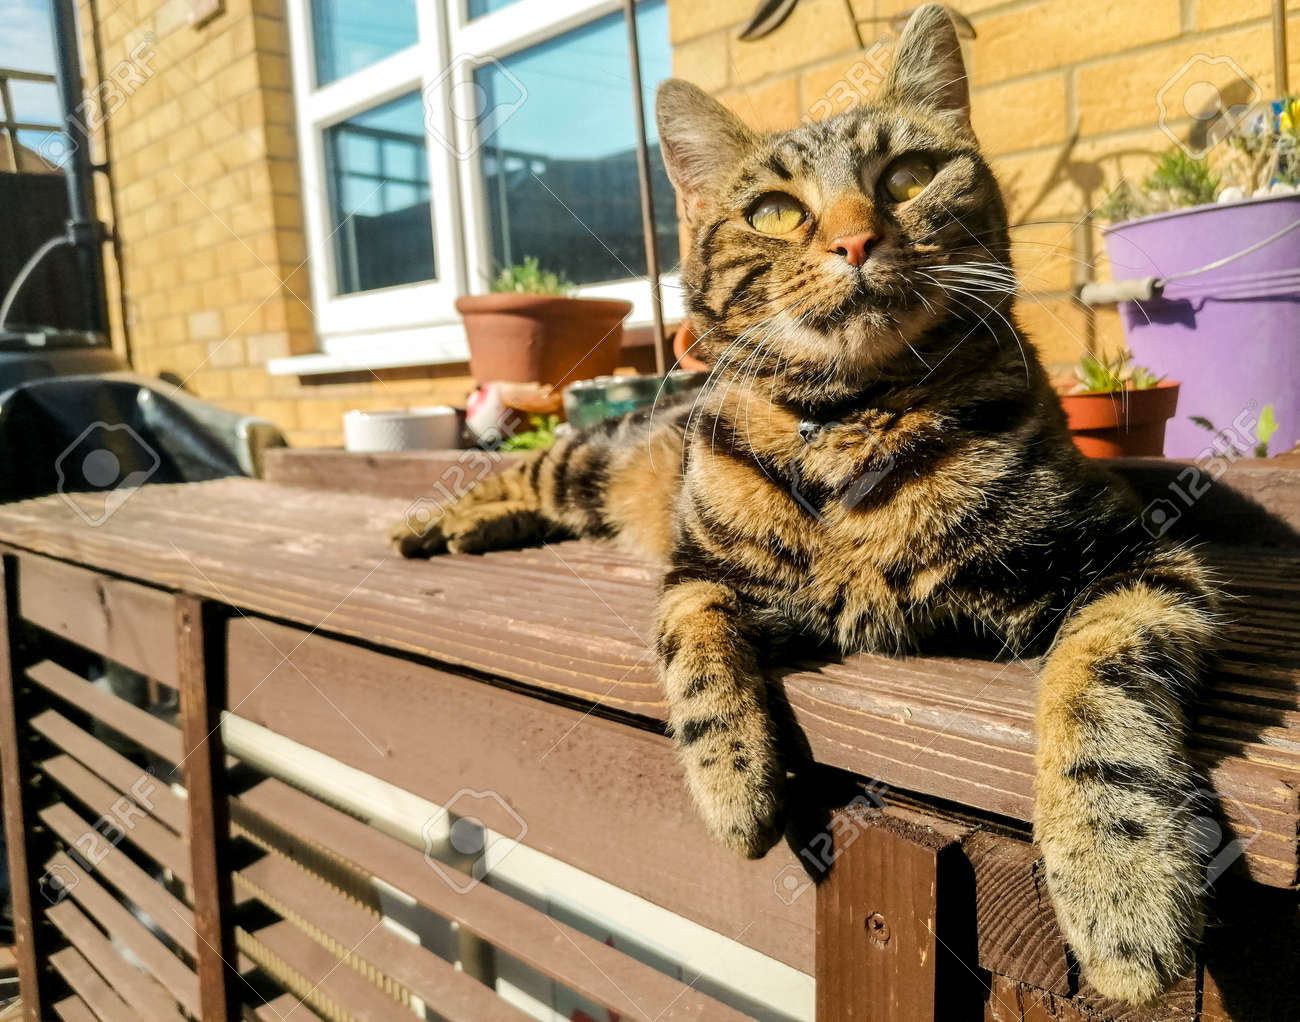 A dark coloured cat enjoys the heat of the sun, during summertime, and relaxes in the sunshine. - 168149664